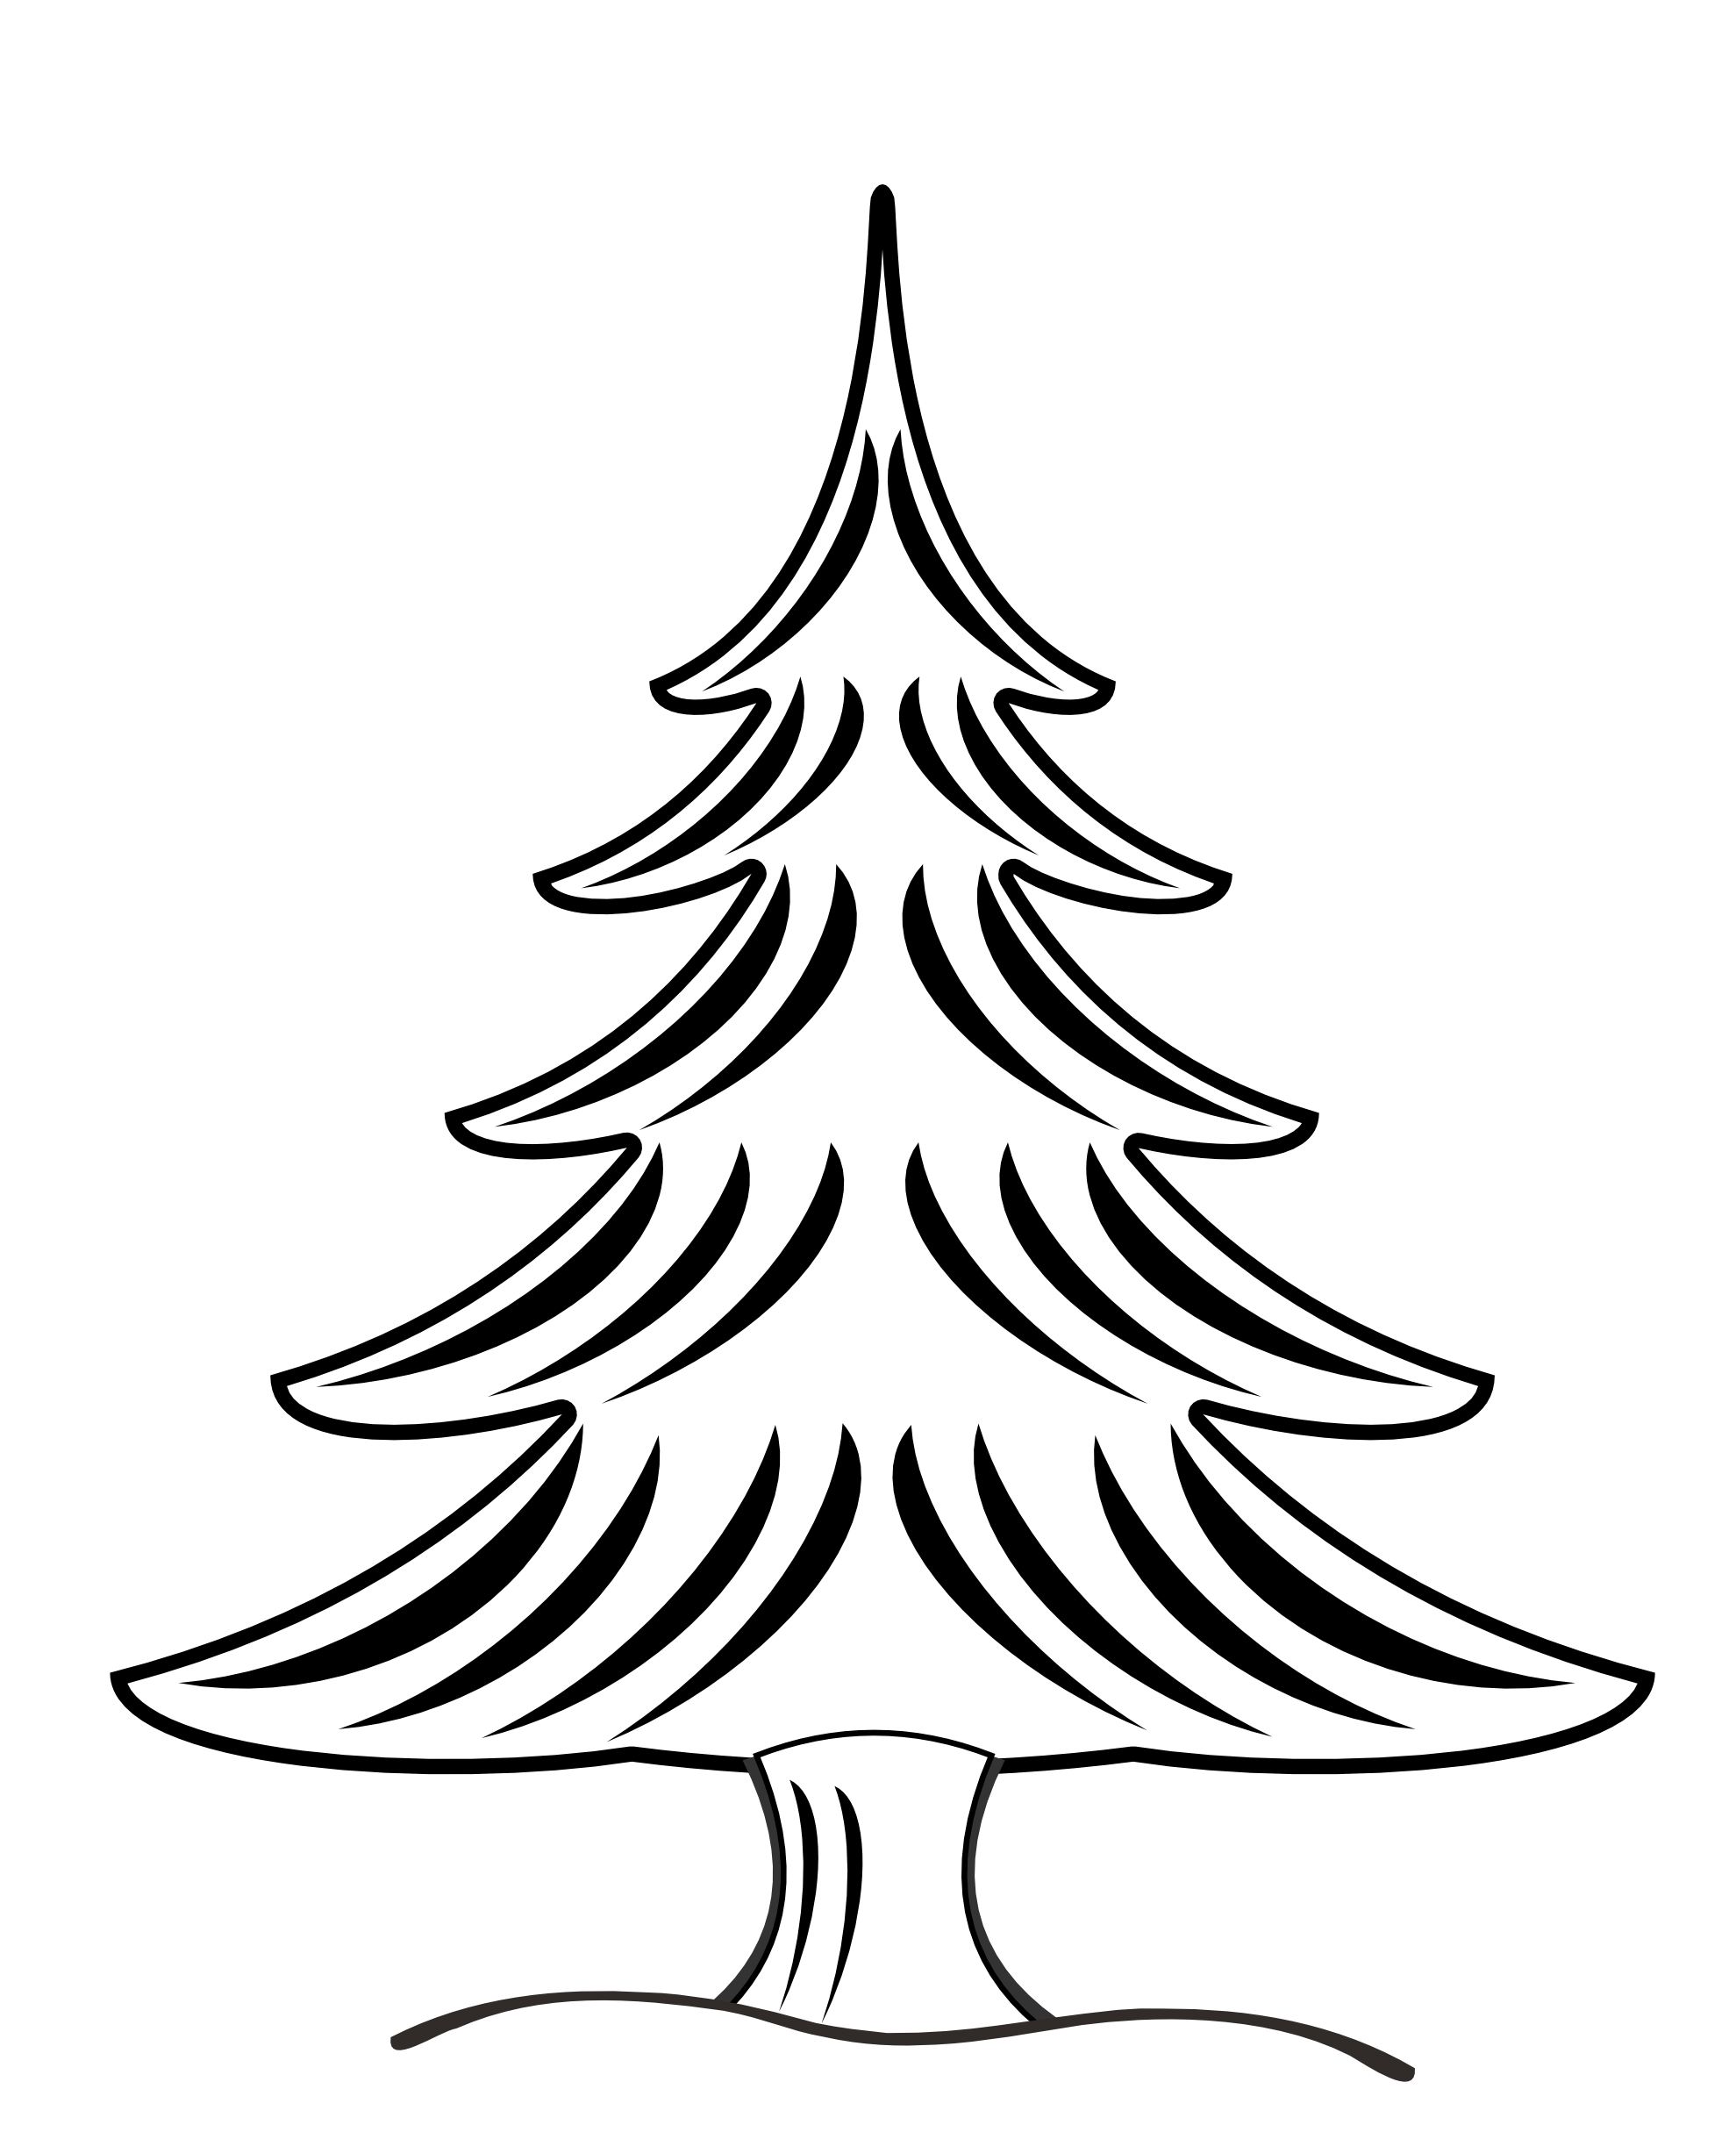 Line clipart pine tree Pine black of trees collection